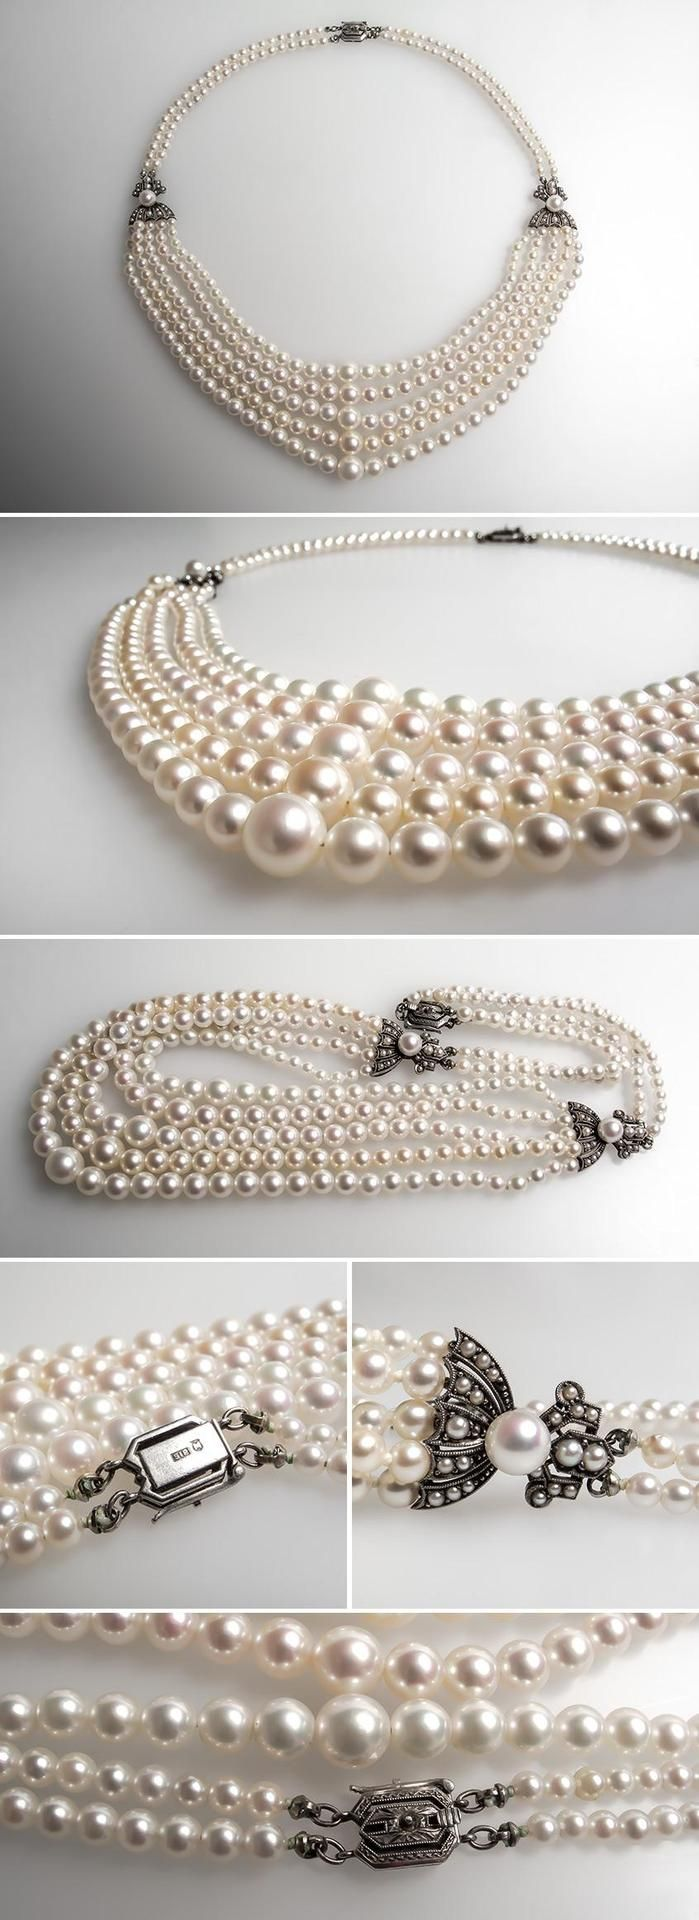 Vintage Mikimoto Pearl Strand Necklace Mill Grain  Engraved Silver. This magnificent vintage Mikimoto designer pearl necklace features ...